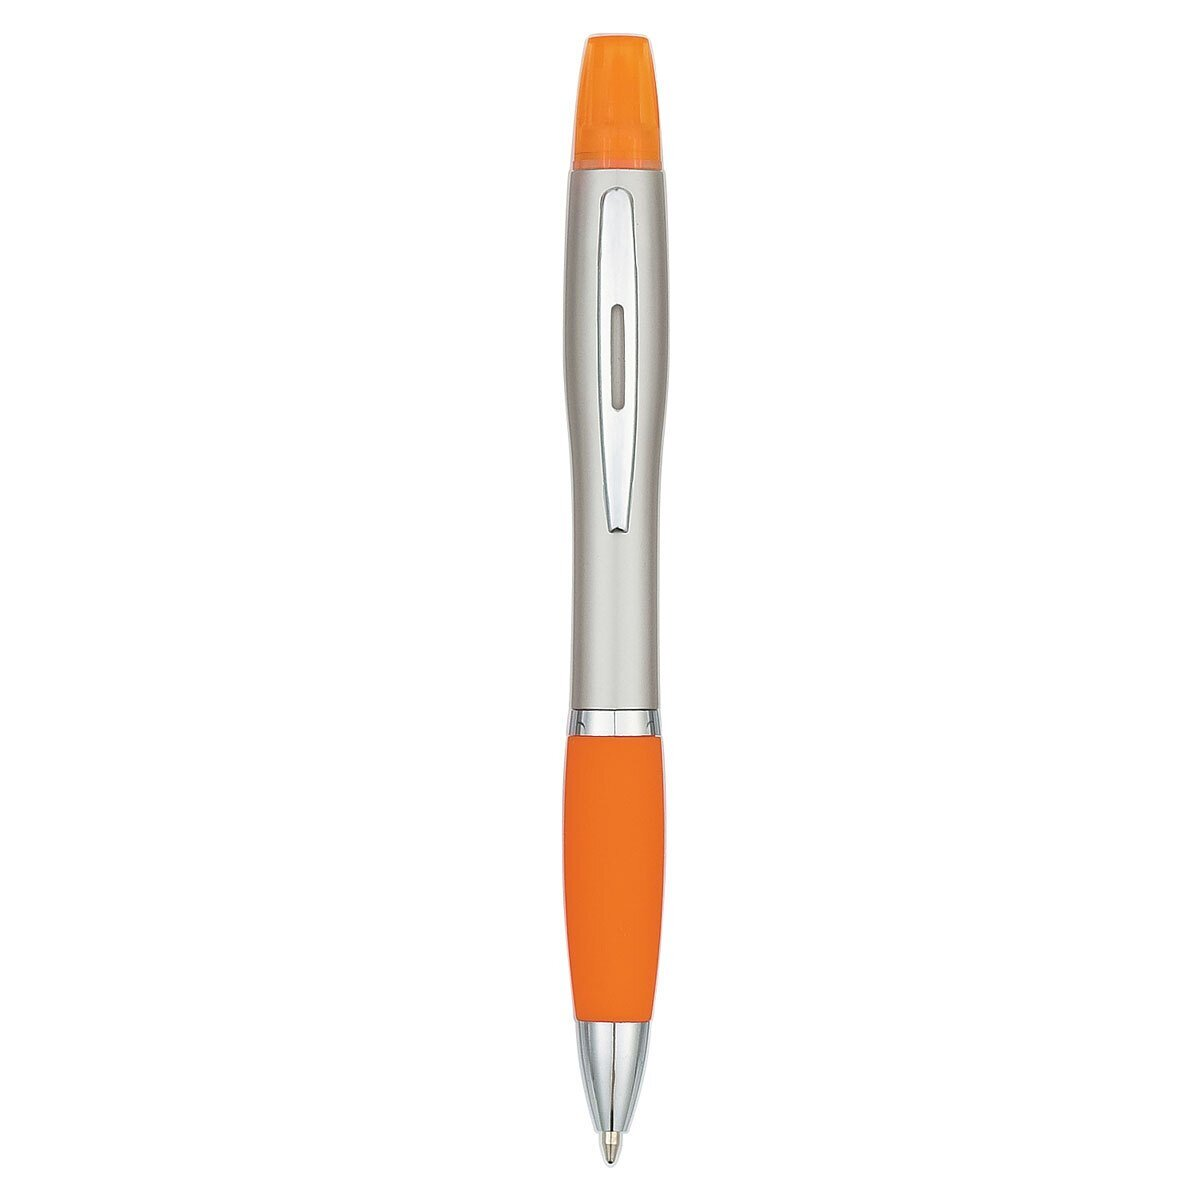 Twin Write Highlighter - Silver Barrel